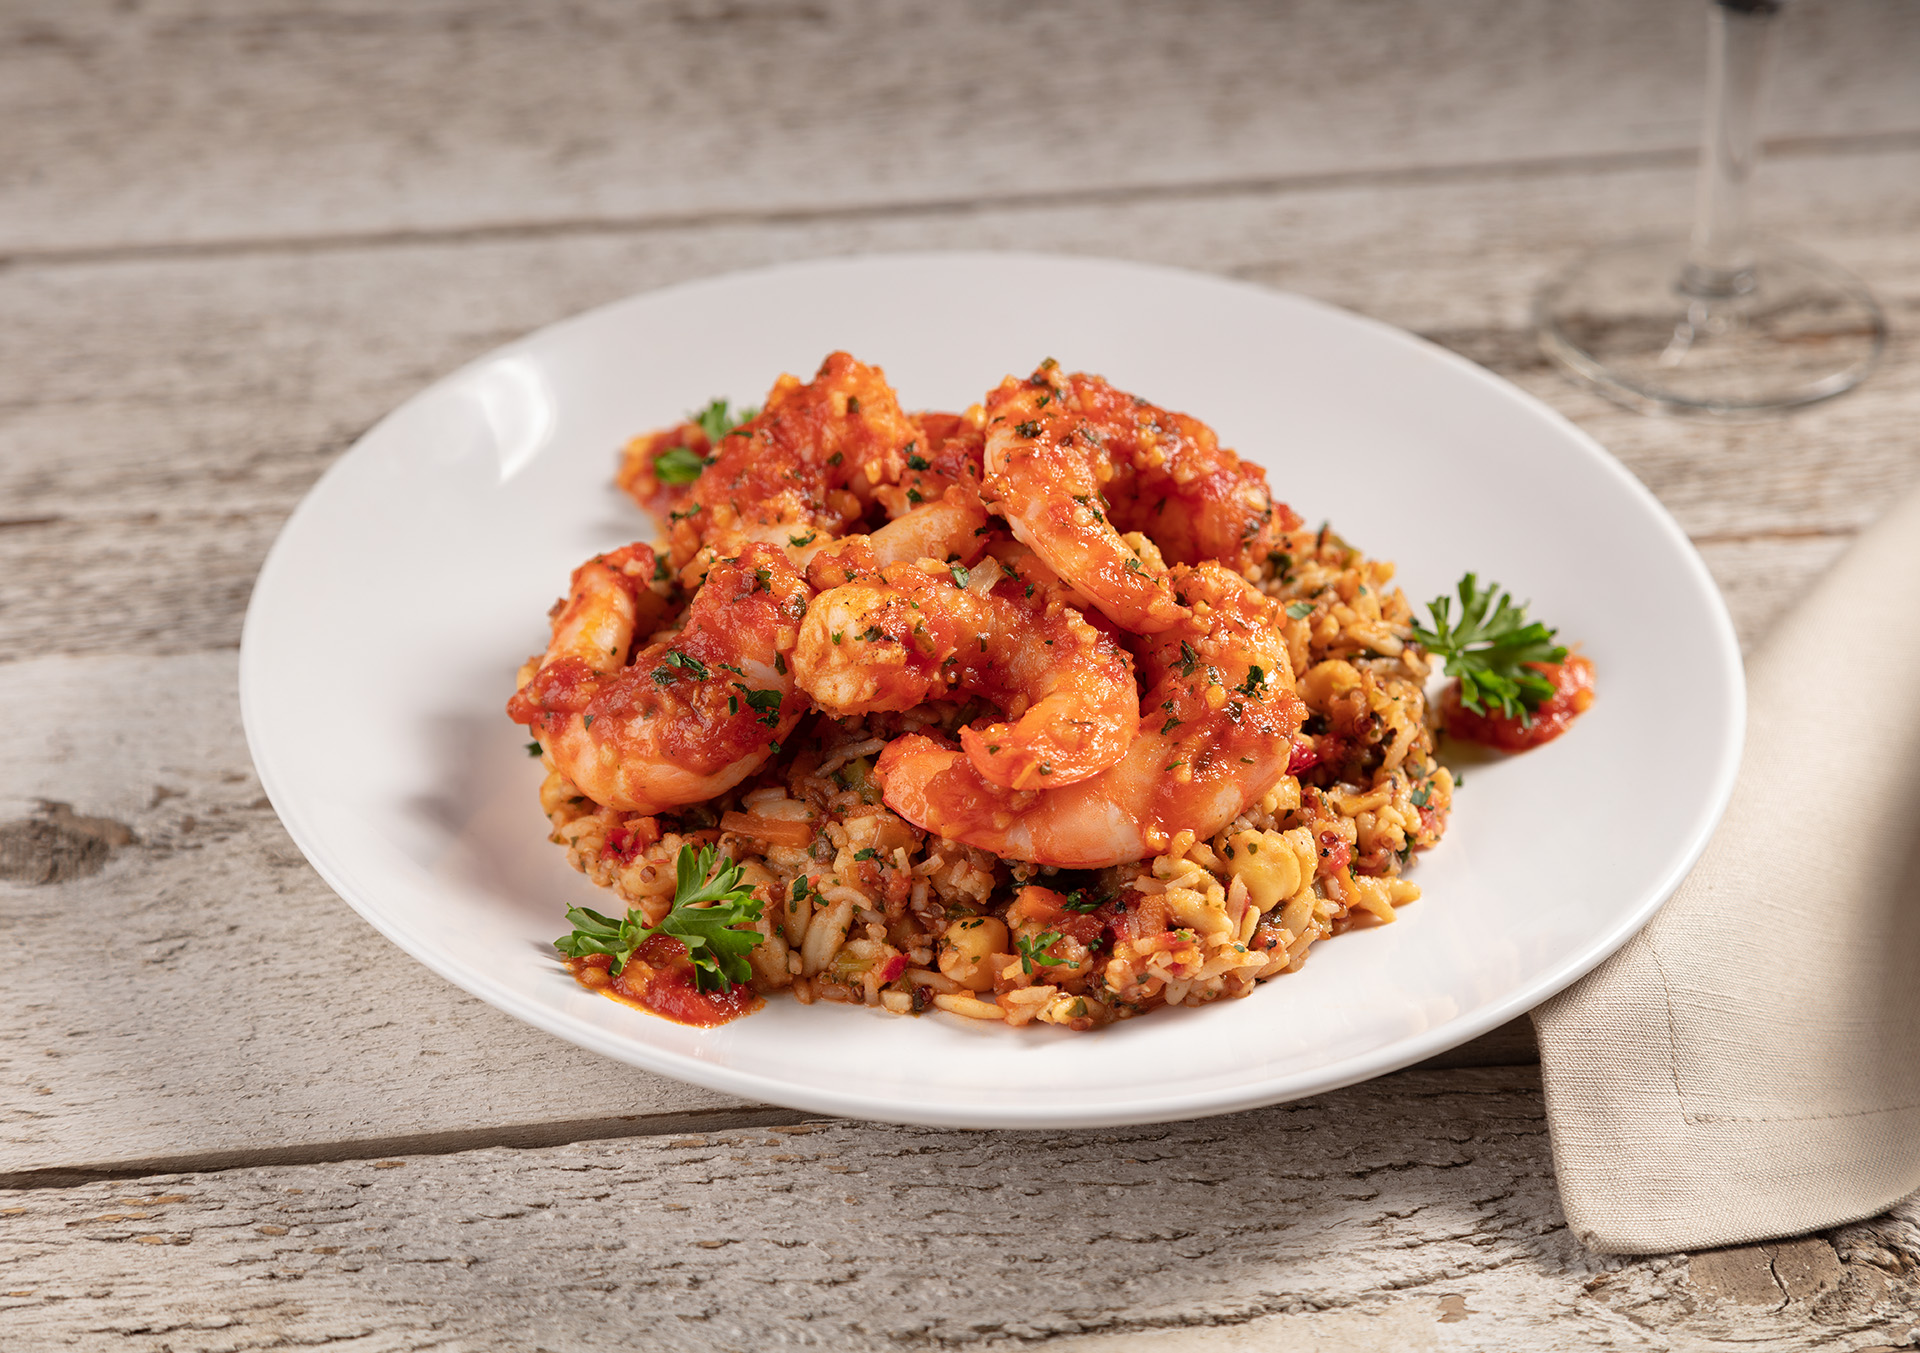 Thumbnail picture of Shrimp Siciliano looking so tasty on a plate.